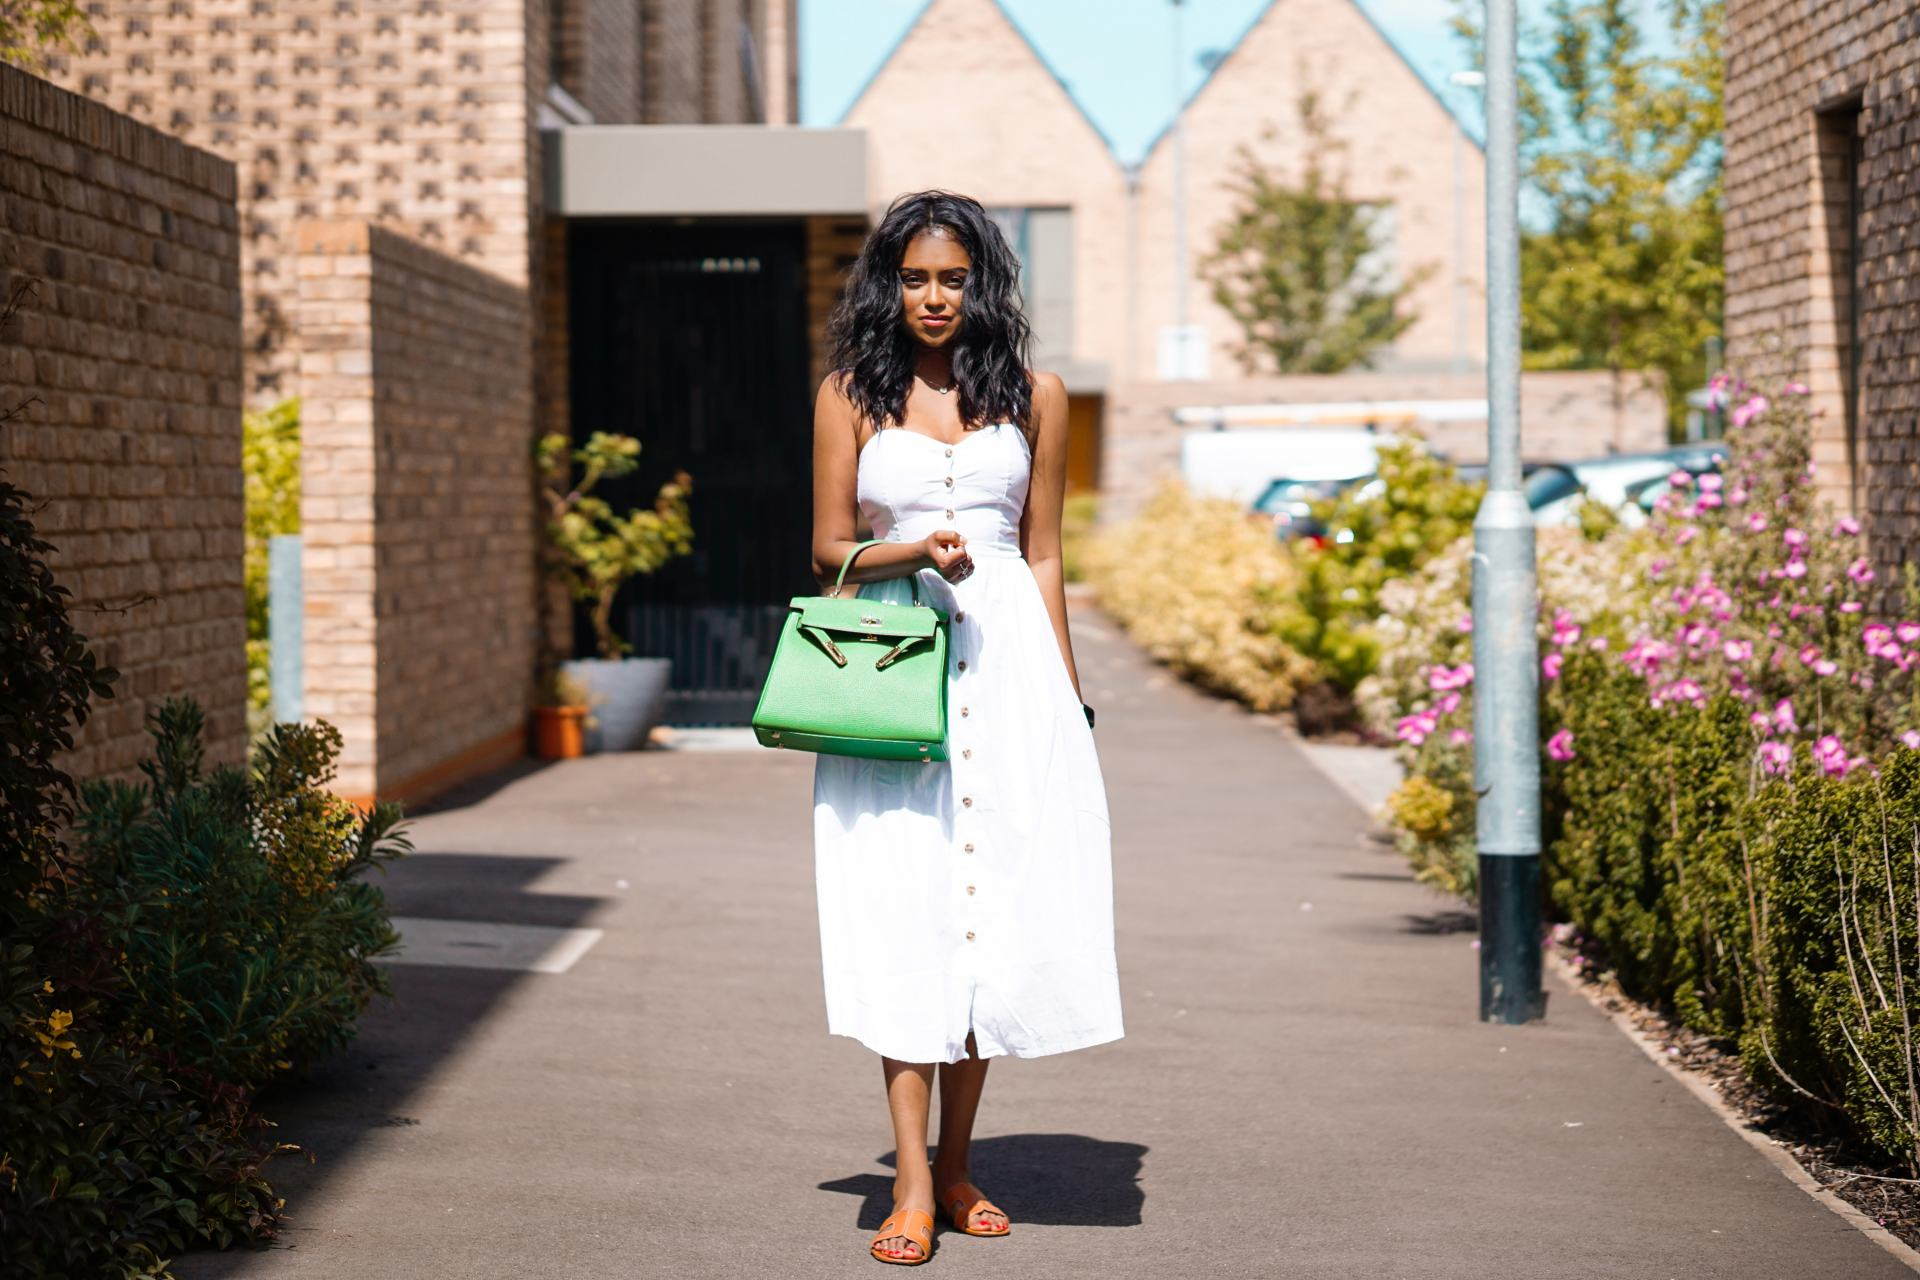 Sachini on a side walk wearing a white dress and a green Lily and Beans bag